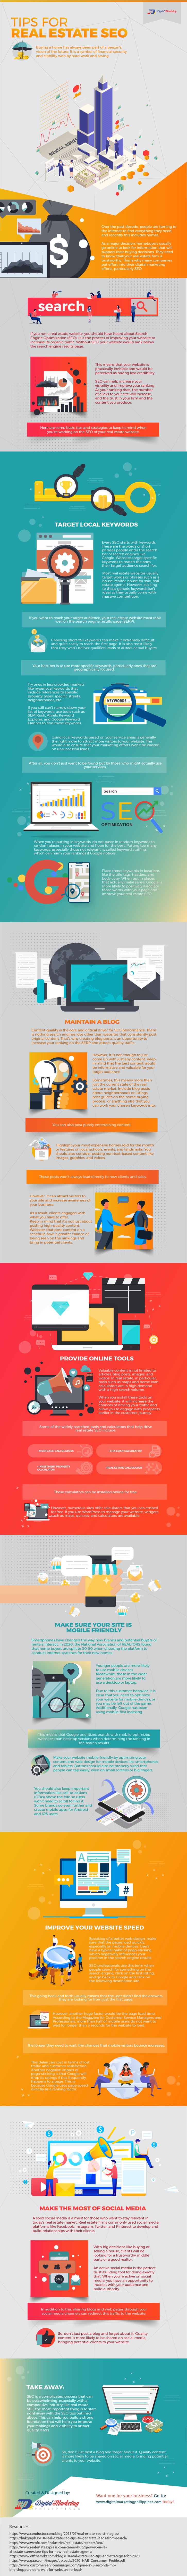 Tips for Real Estate SEO Infographic